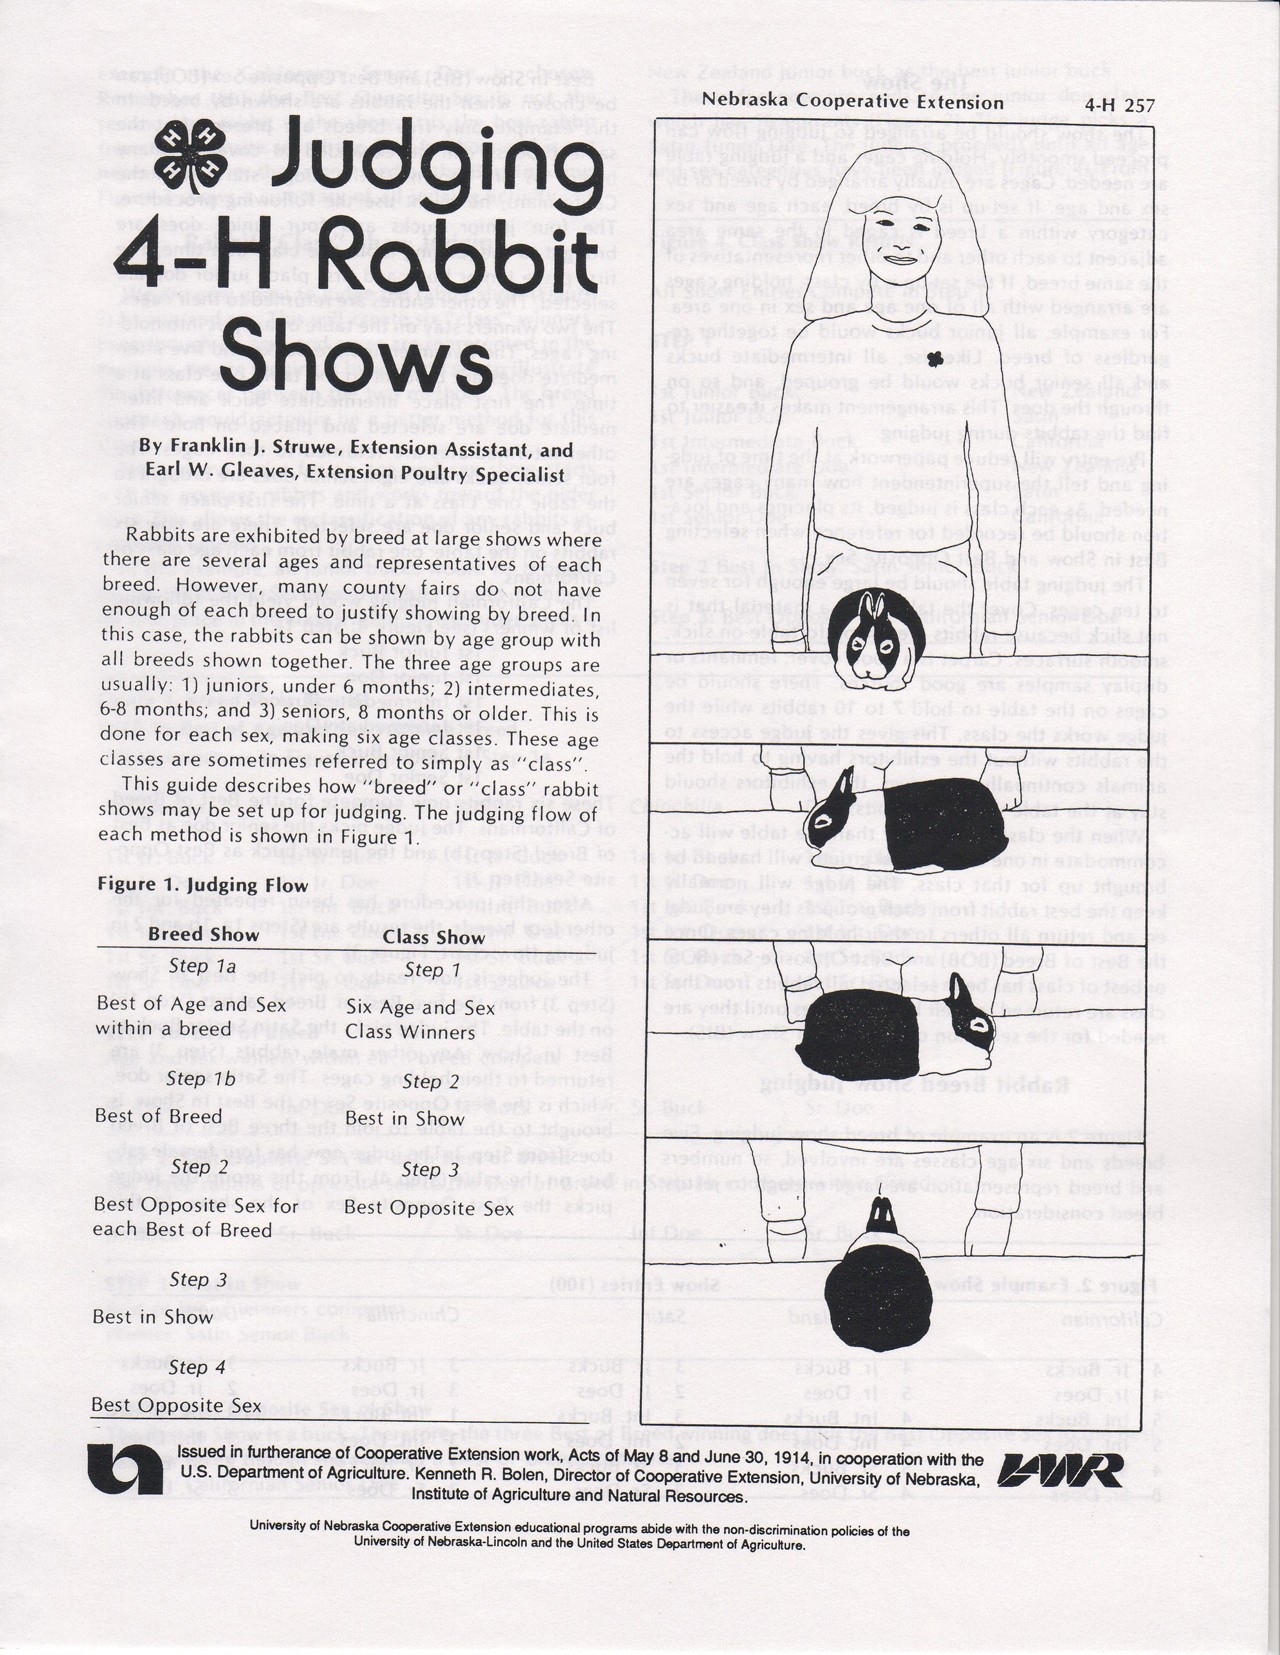 Judging 4H Rabbit Shows